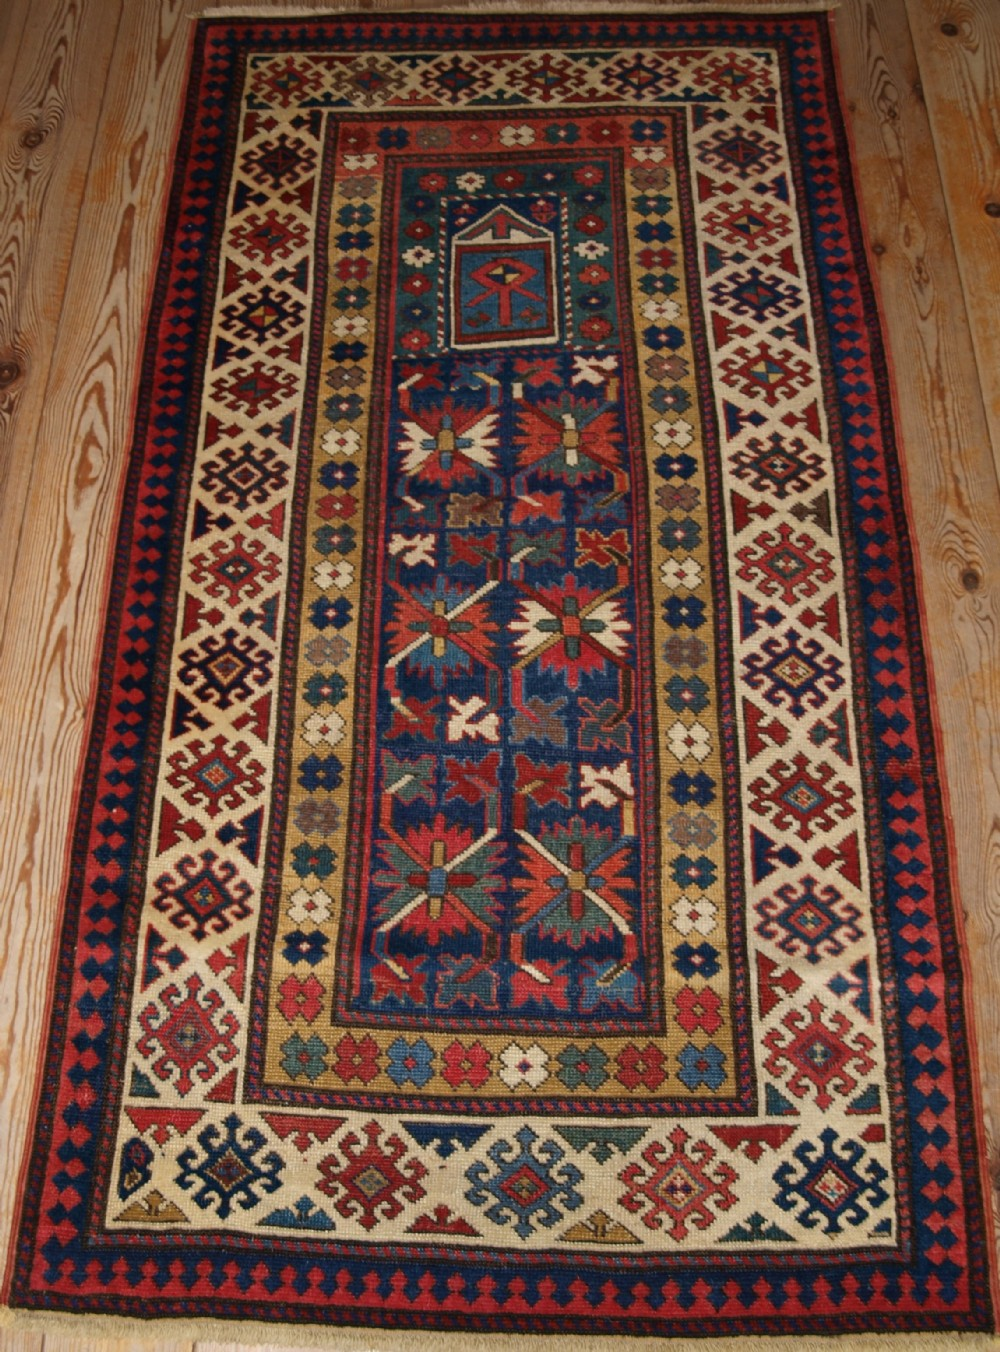 antique caucasian karabagh prayer rug great rug 4th quarter 19th cent